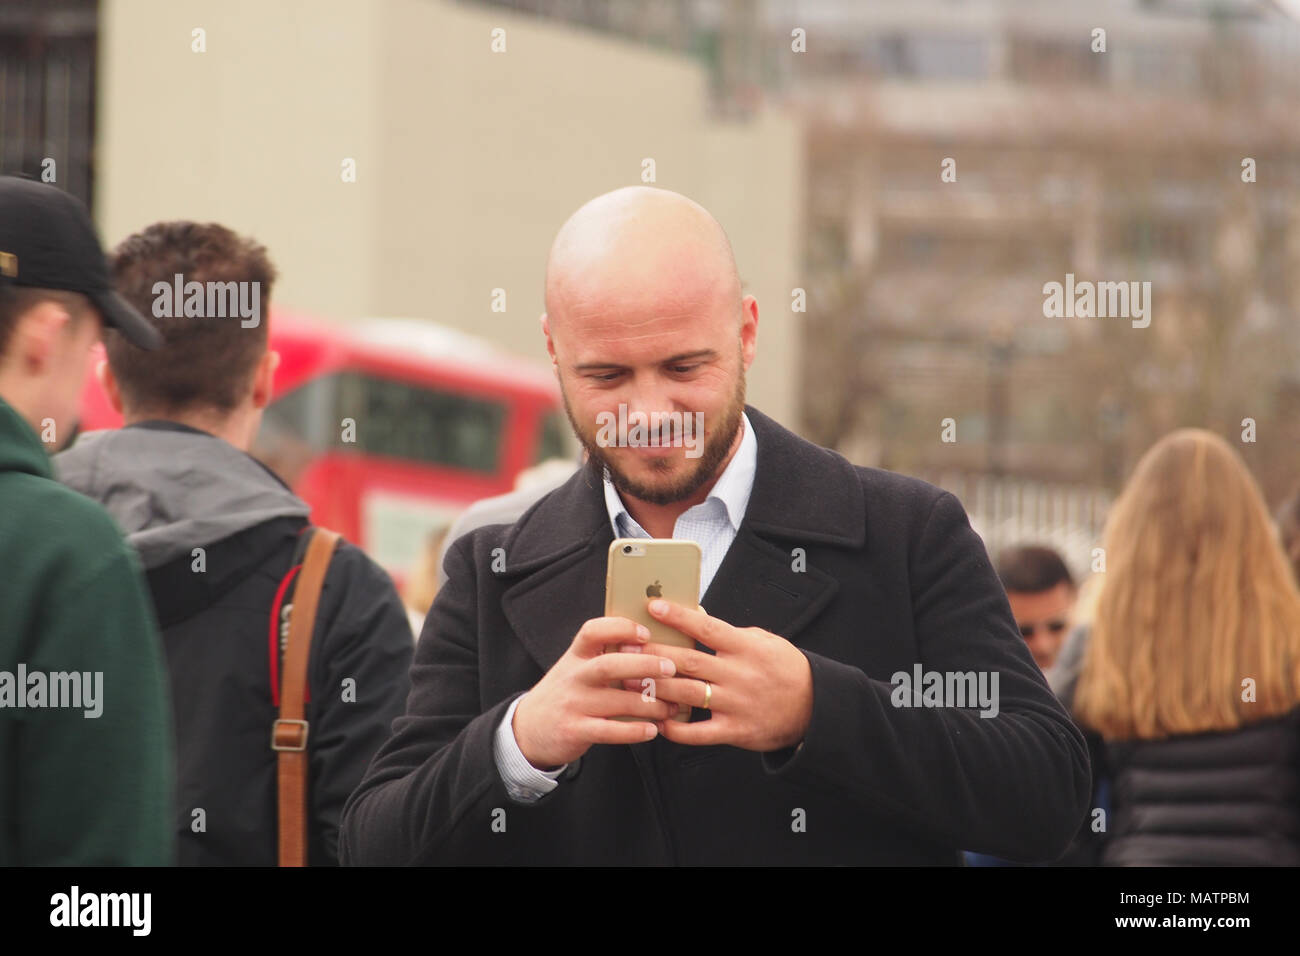 A man wearing an overcoat taking a photograph on his smartphone in London among a crowd of pedestrians and with a bus in the background - Stock Image